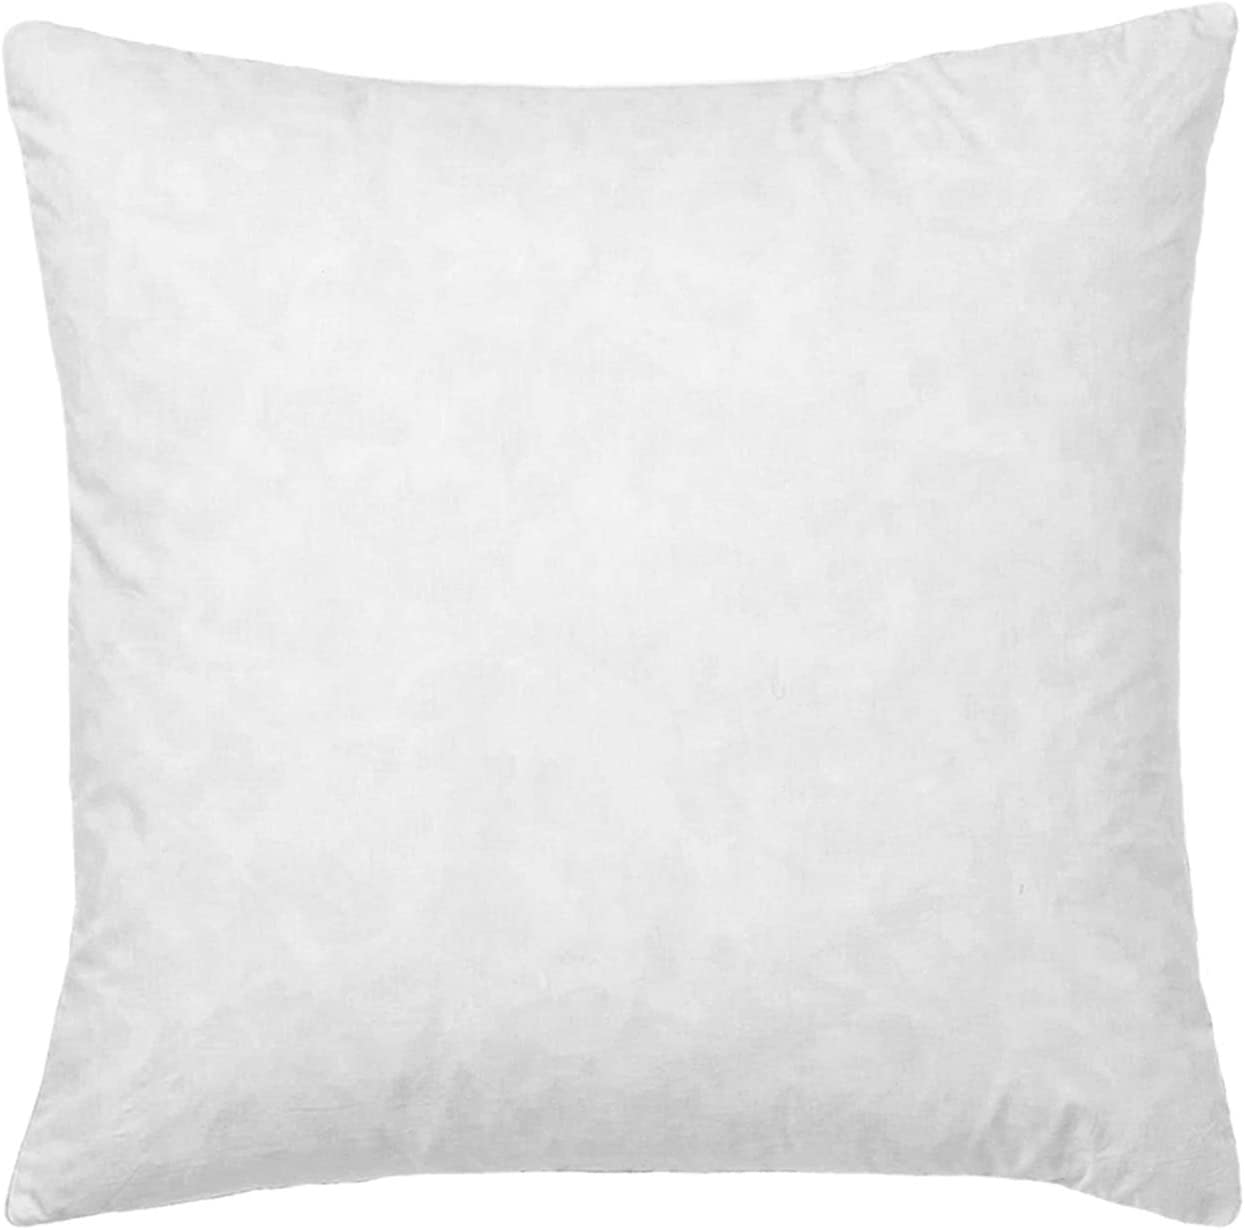 30x30 Euro Pillow Insert, Soft Decorative Down Feather Pillow Stuffer, Premium White Cotton Fabric Pillow Form for Couch, Bed, and Cushion